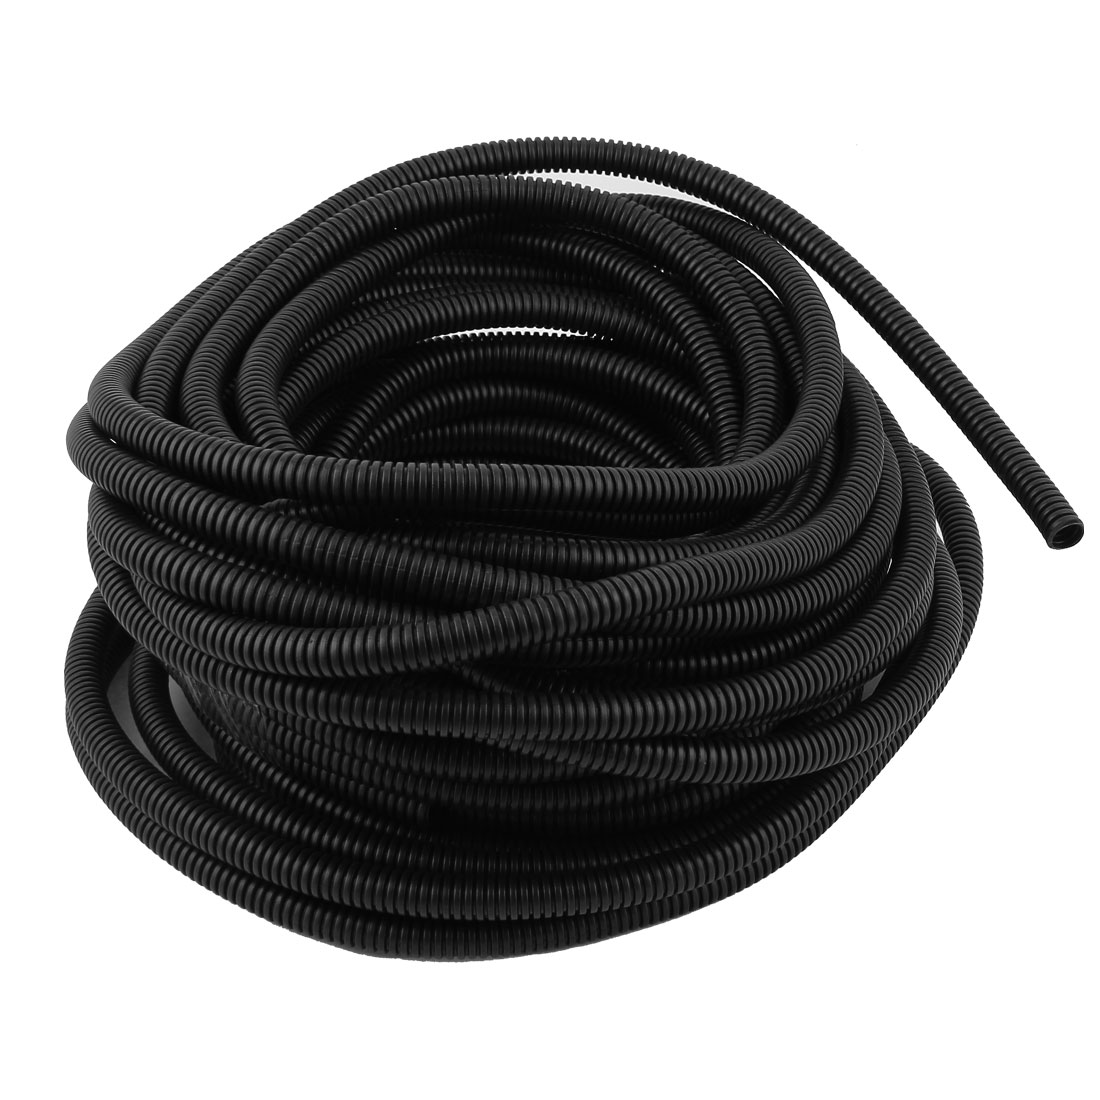 12 x 8 mm Flexible Corrugated Wire Hose Cover Conduit Corrugated Tube 71.52ft Black